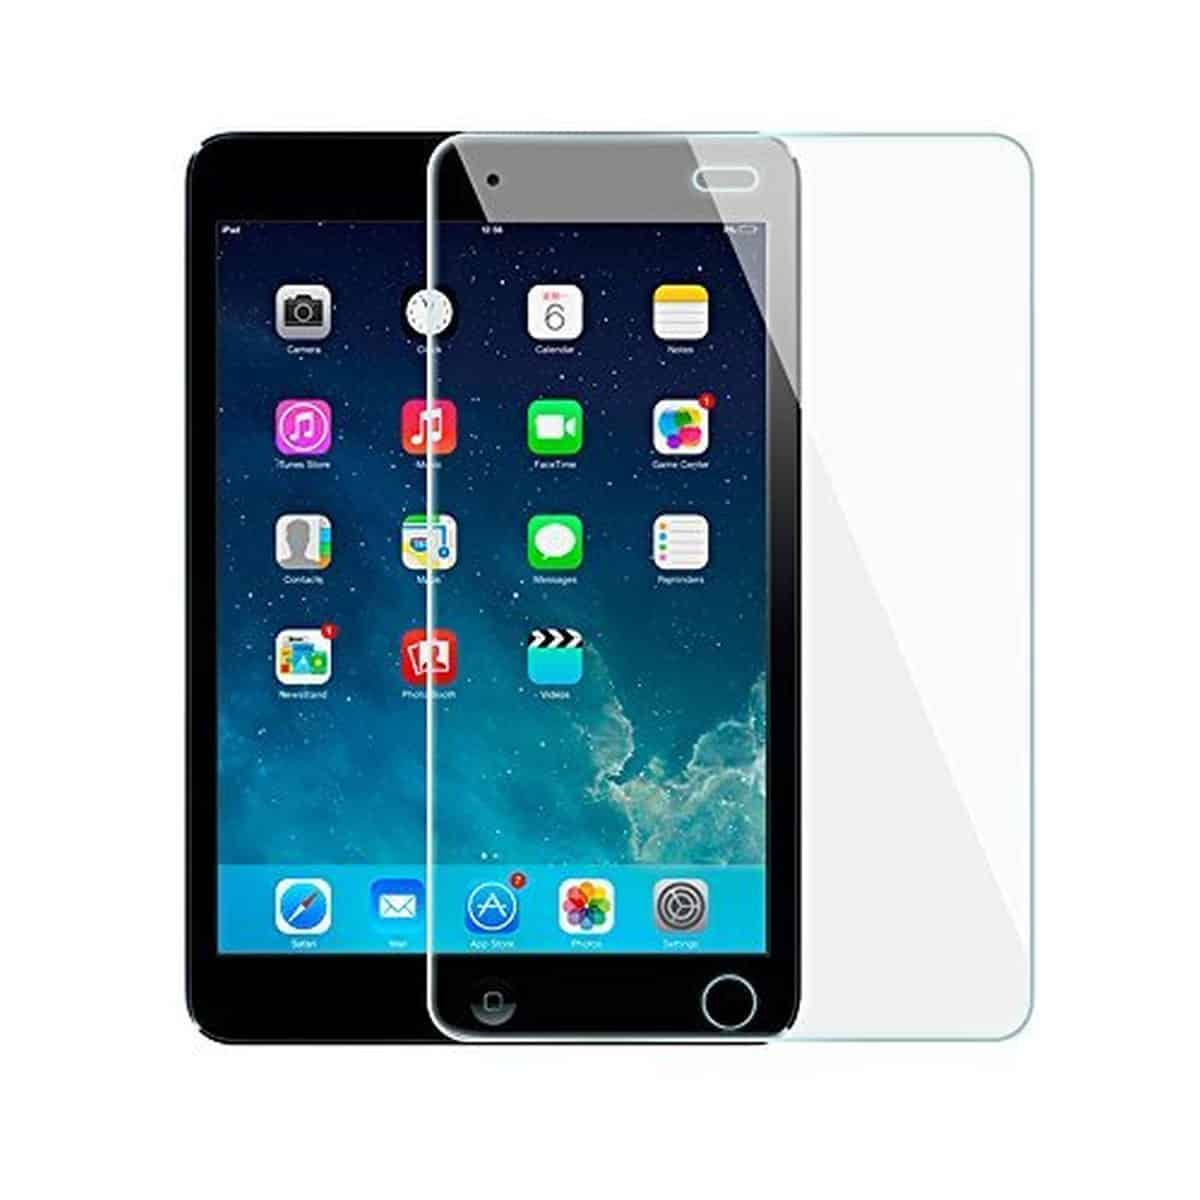 Anker Tempered Glass Screen Protector | Essential iPad Accessories